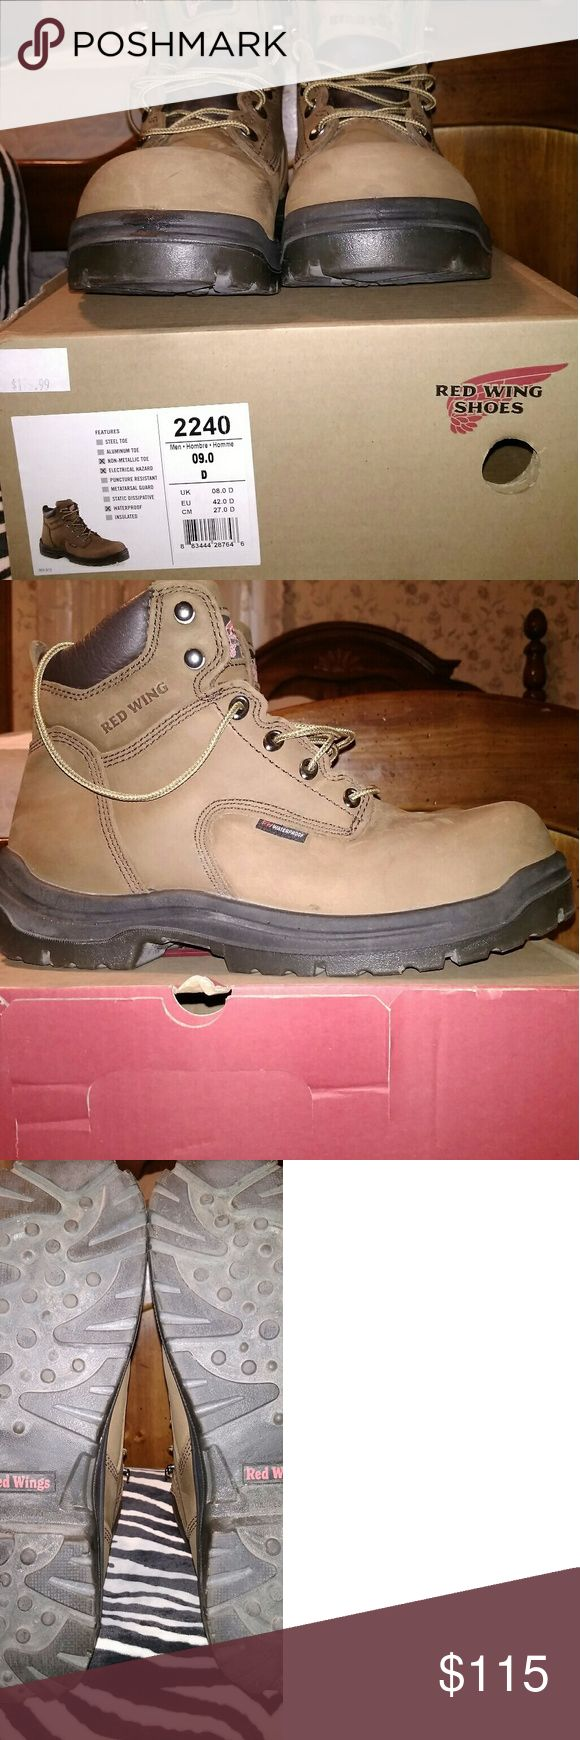 Red Wing Steel toe work boots Men's Red Wing steel toe work boots size 9 D. Worn twice for less than an hour each time Red Wing Shoes Shoes Boots